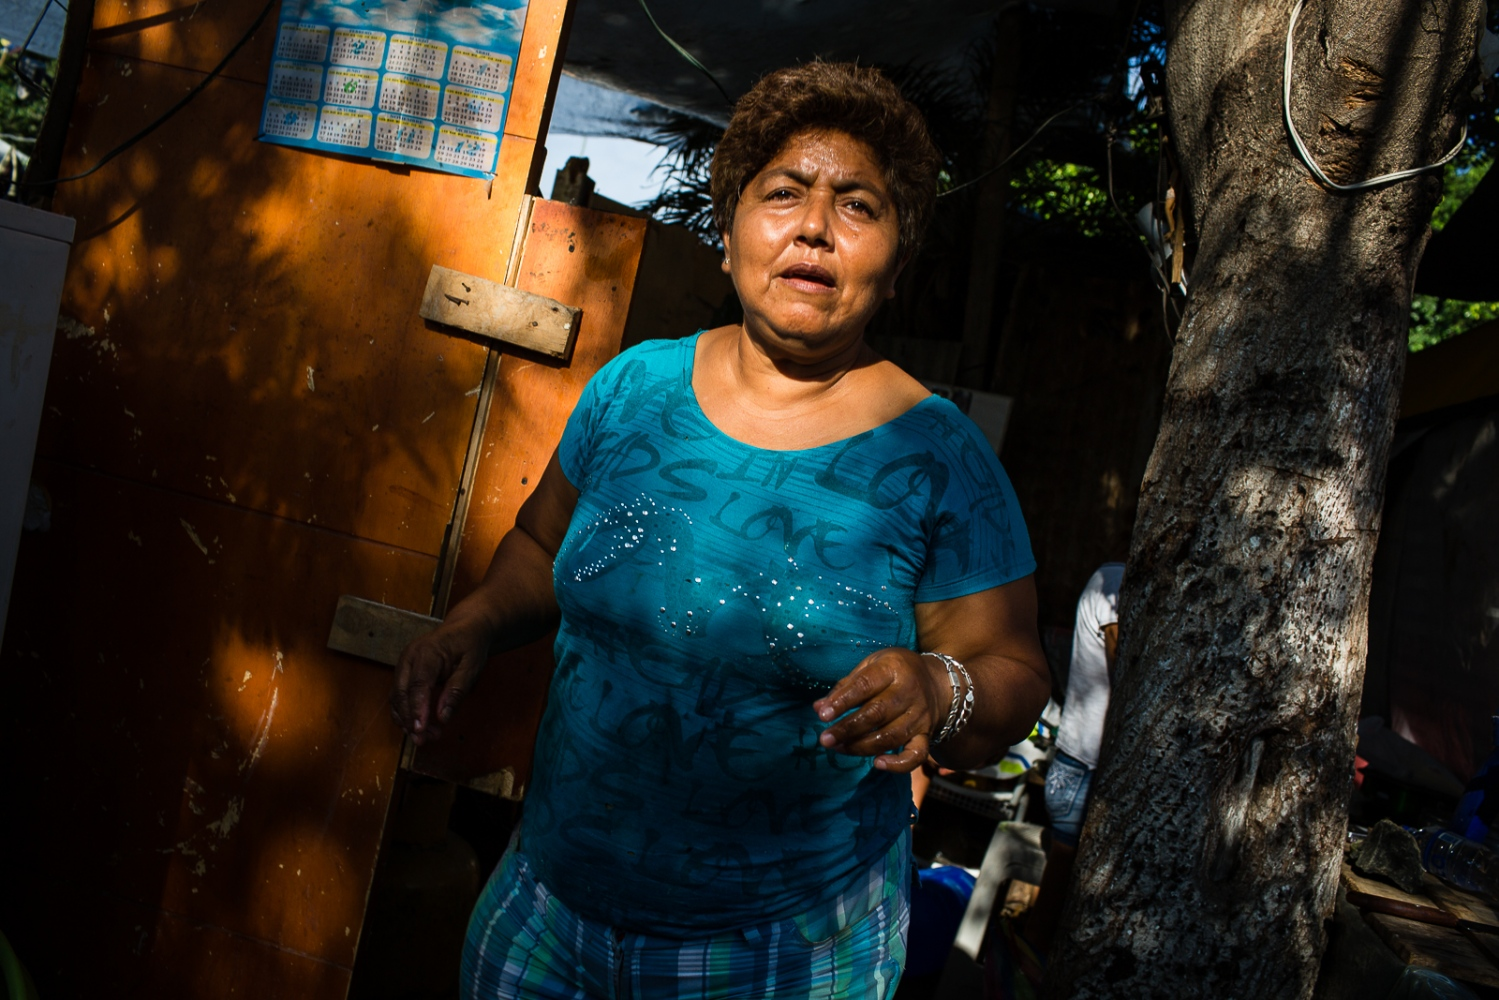 Narcisa Mera, 53, leaving her improvised kitchen in  Sucre Park, the central square in Bahia de Caráquez. Narcisa refuses to move to a shelter provided by the Government, because she is afraid that thieves can steal the few belongings she possesses. She claims that shelters are filled with some bad people and she can't protect her things and her grandchildren. Instead, she prefers to live in the Park in front of her former house that was destroyed by the 16th April earthquake with another 30 families.